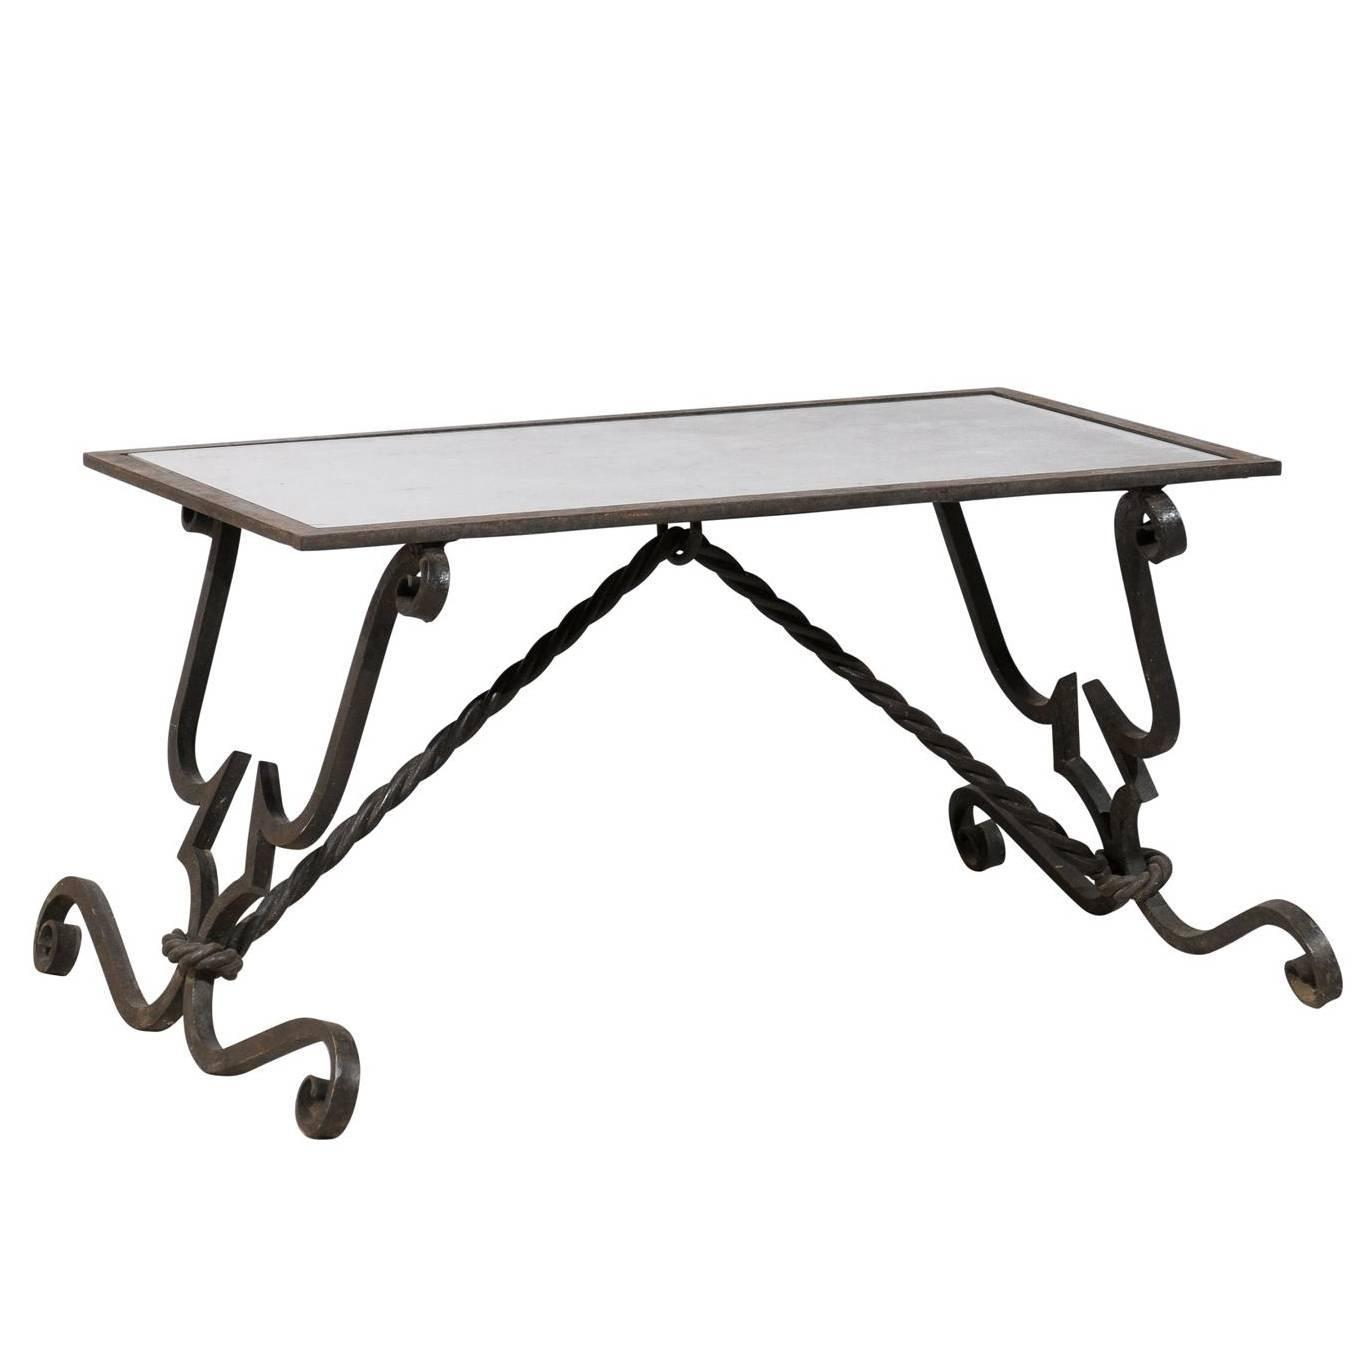 French Vintage Wrought Iron Base Coffee Table For Sale At 1stdibs